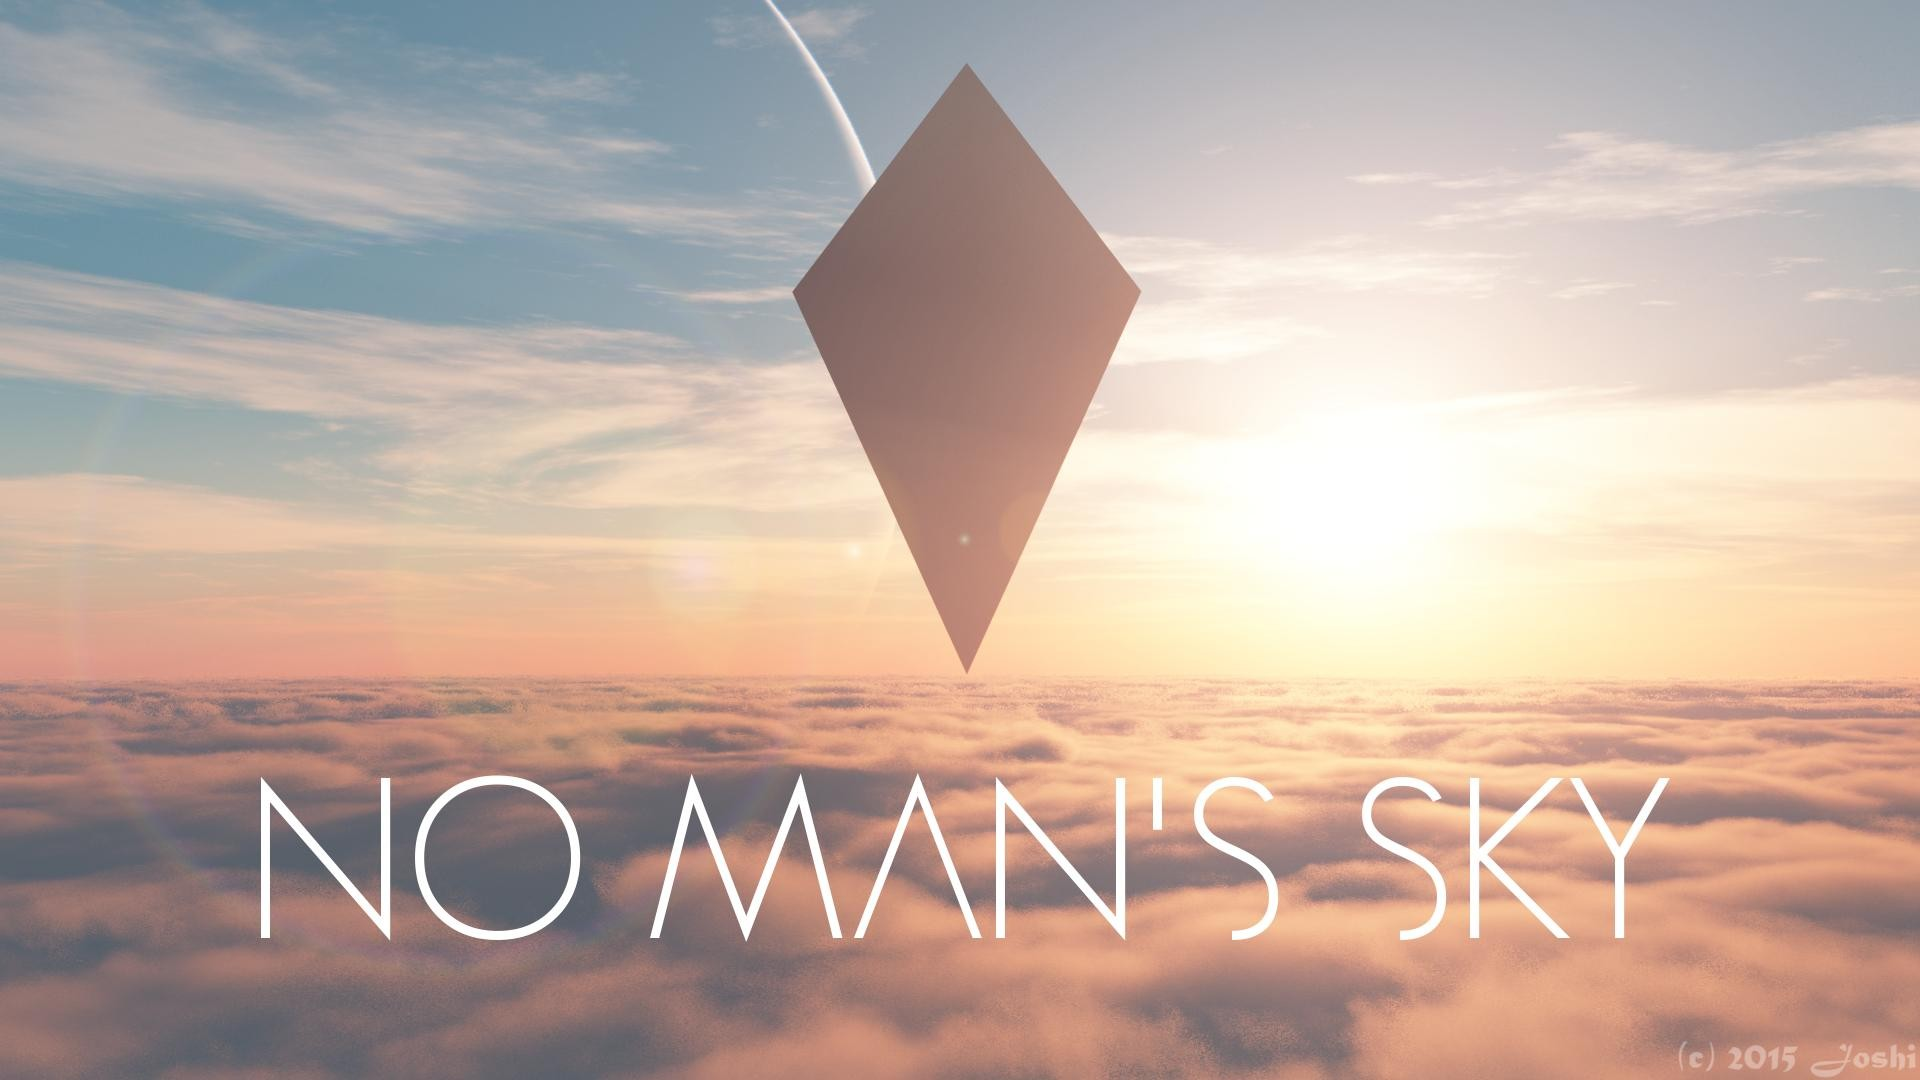 Cool Backgrounds For Computers Hd 1920x1080 No Man's Sky backgroun...